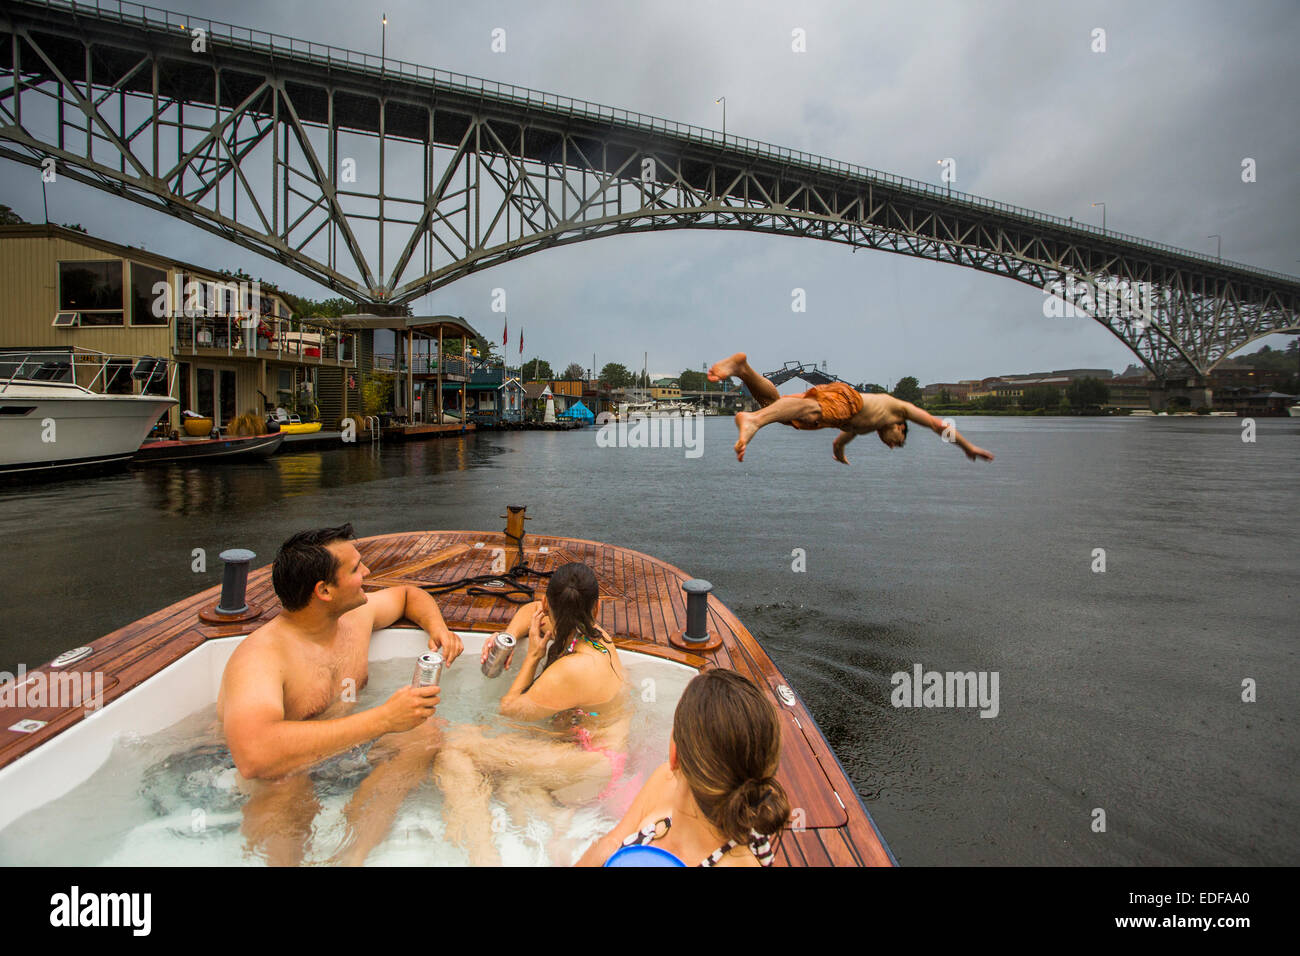 A young man dives off the bow of a hot tub boat in Lake Union during a rain storm. - Stock Image